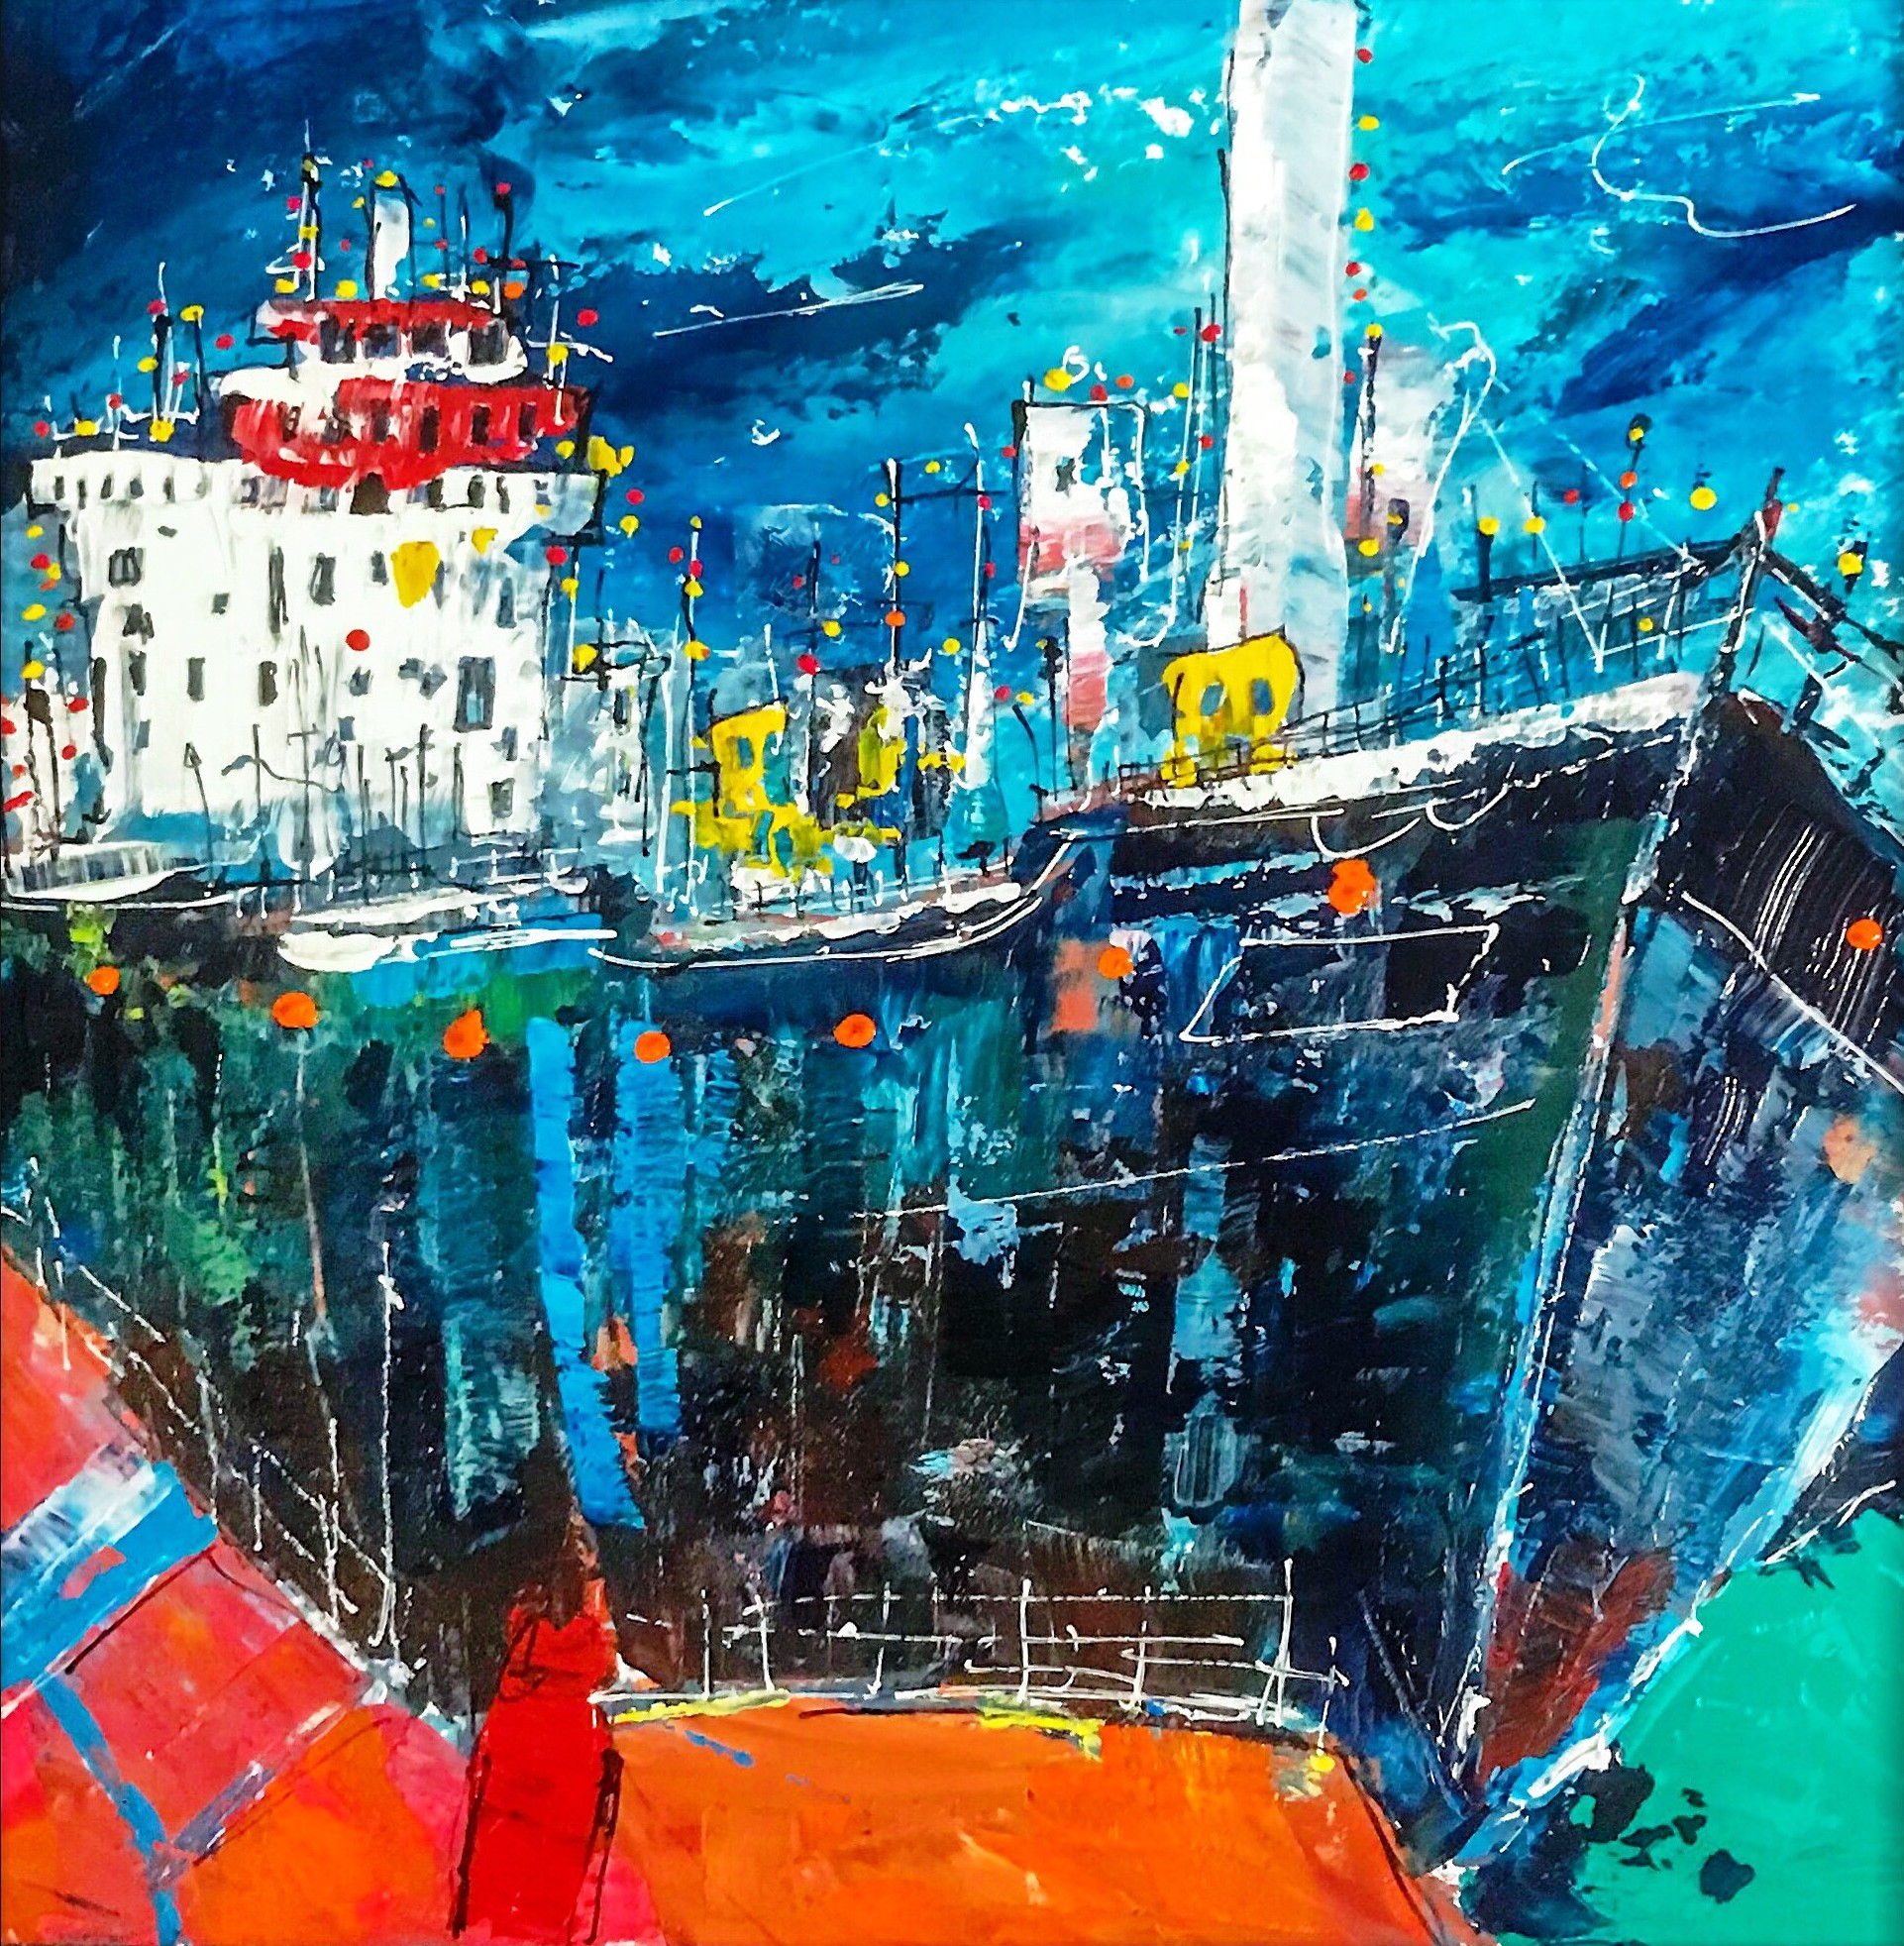 'Busy Harbour' by artist Martin John Fowler